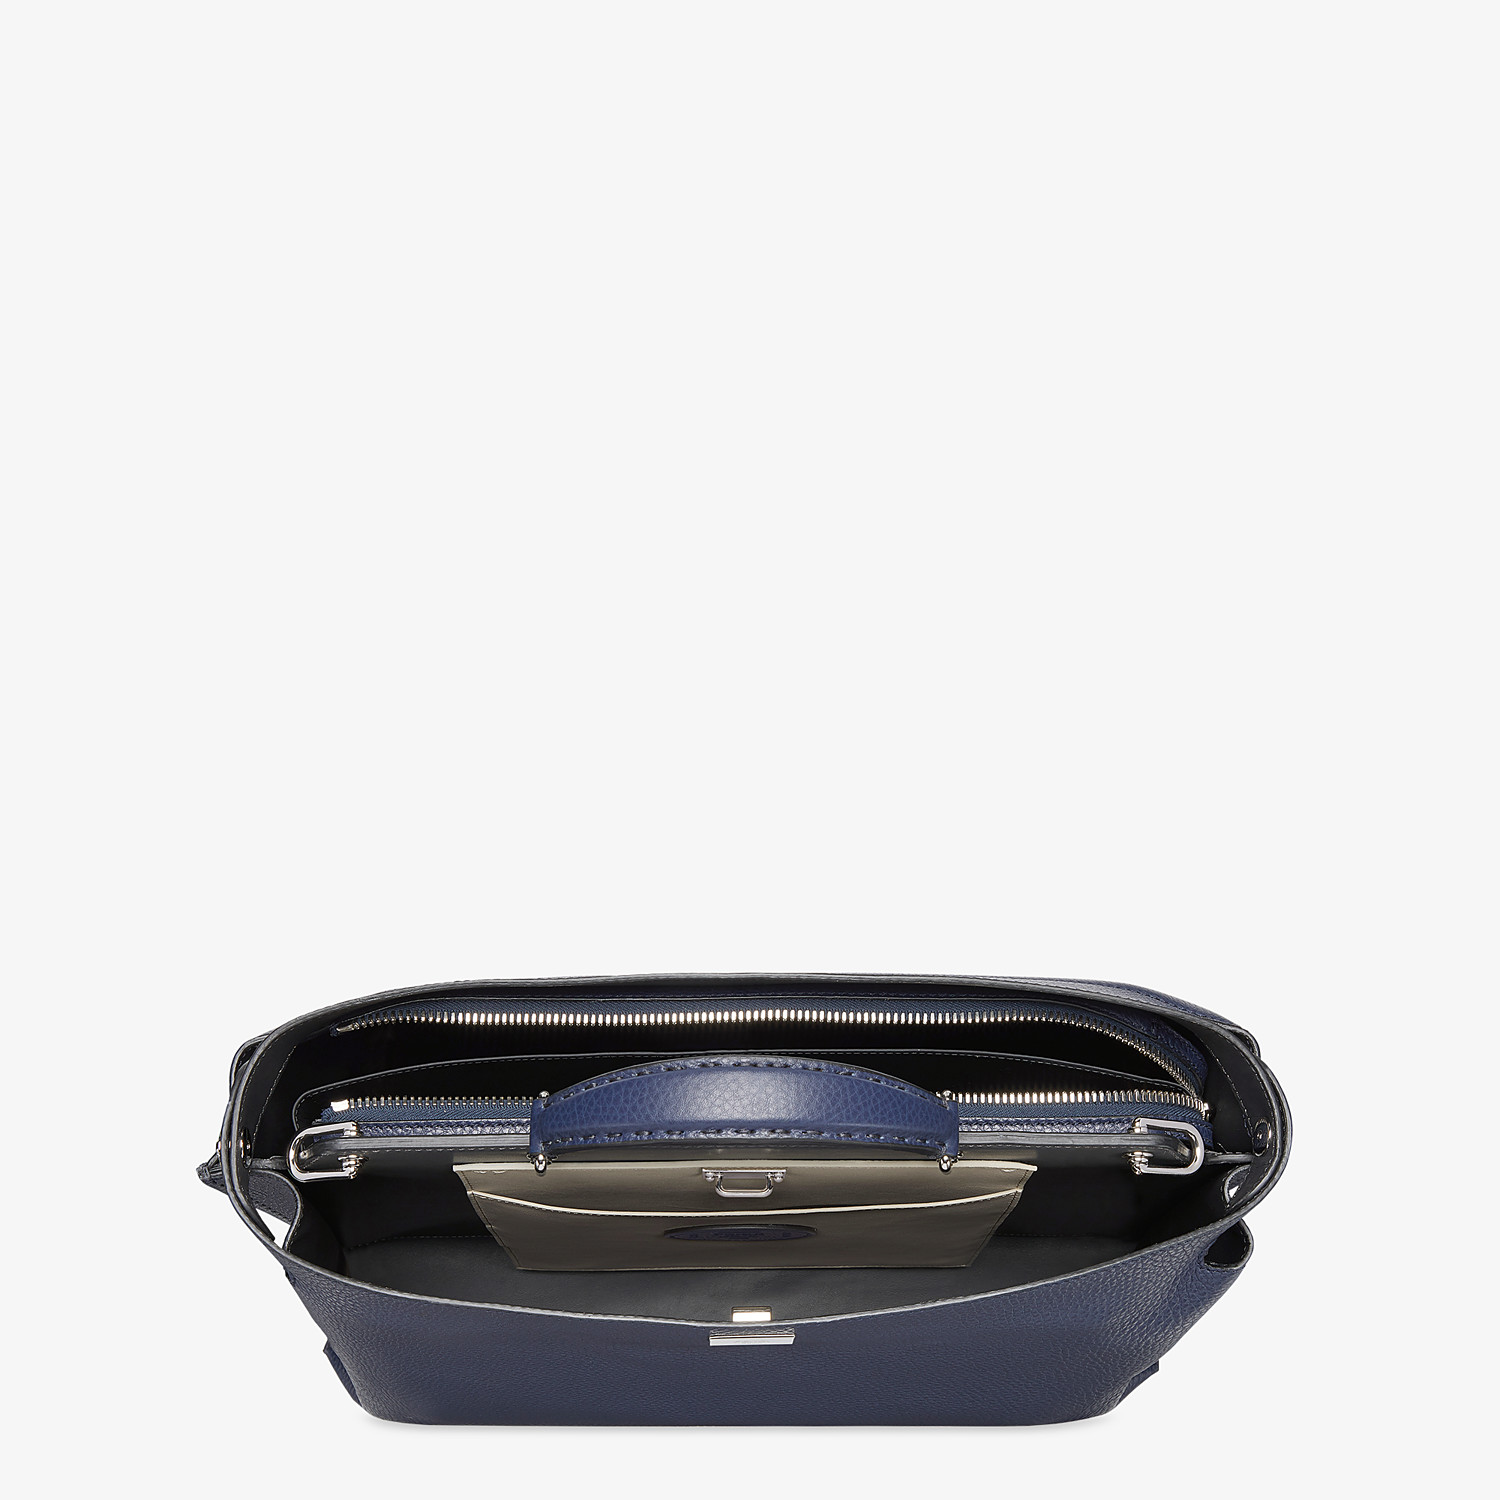 FENDI PEEKABOO ICONIC ESSENTIAL - Blue leather bag - view 4 detail